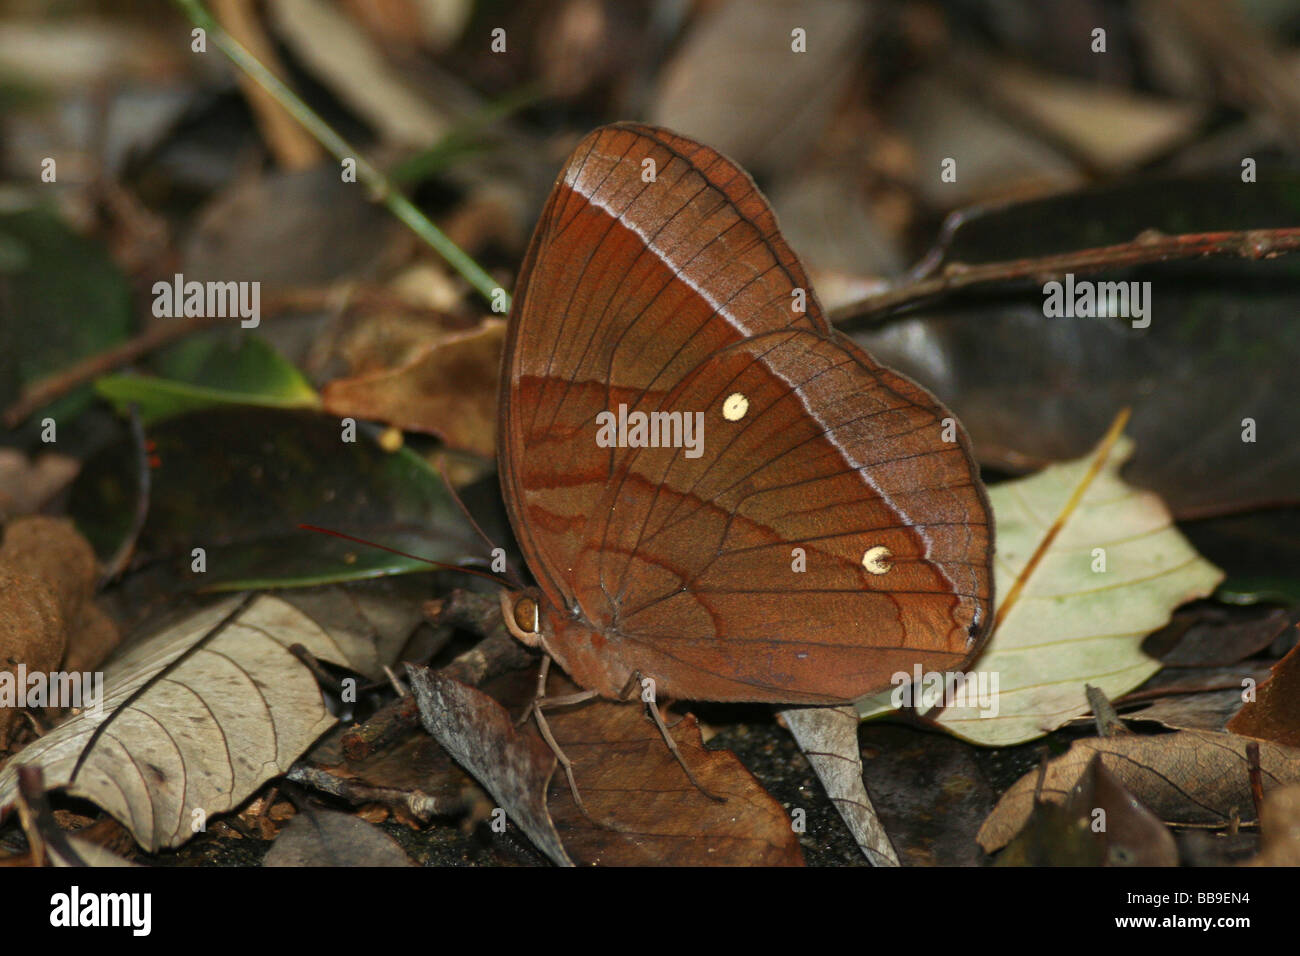 Butterfly, Viet Nam - Stock Image